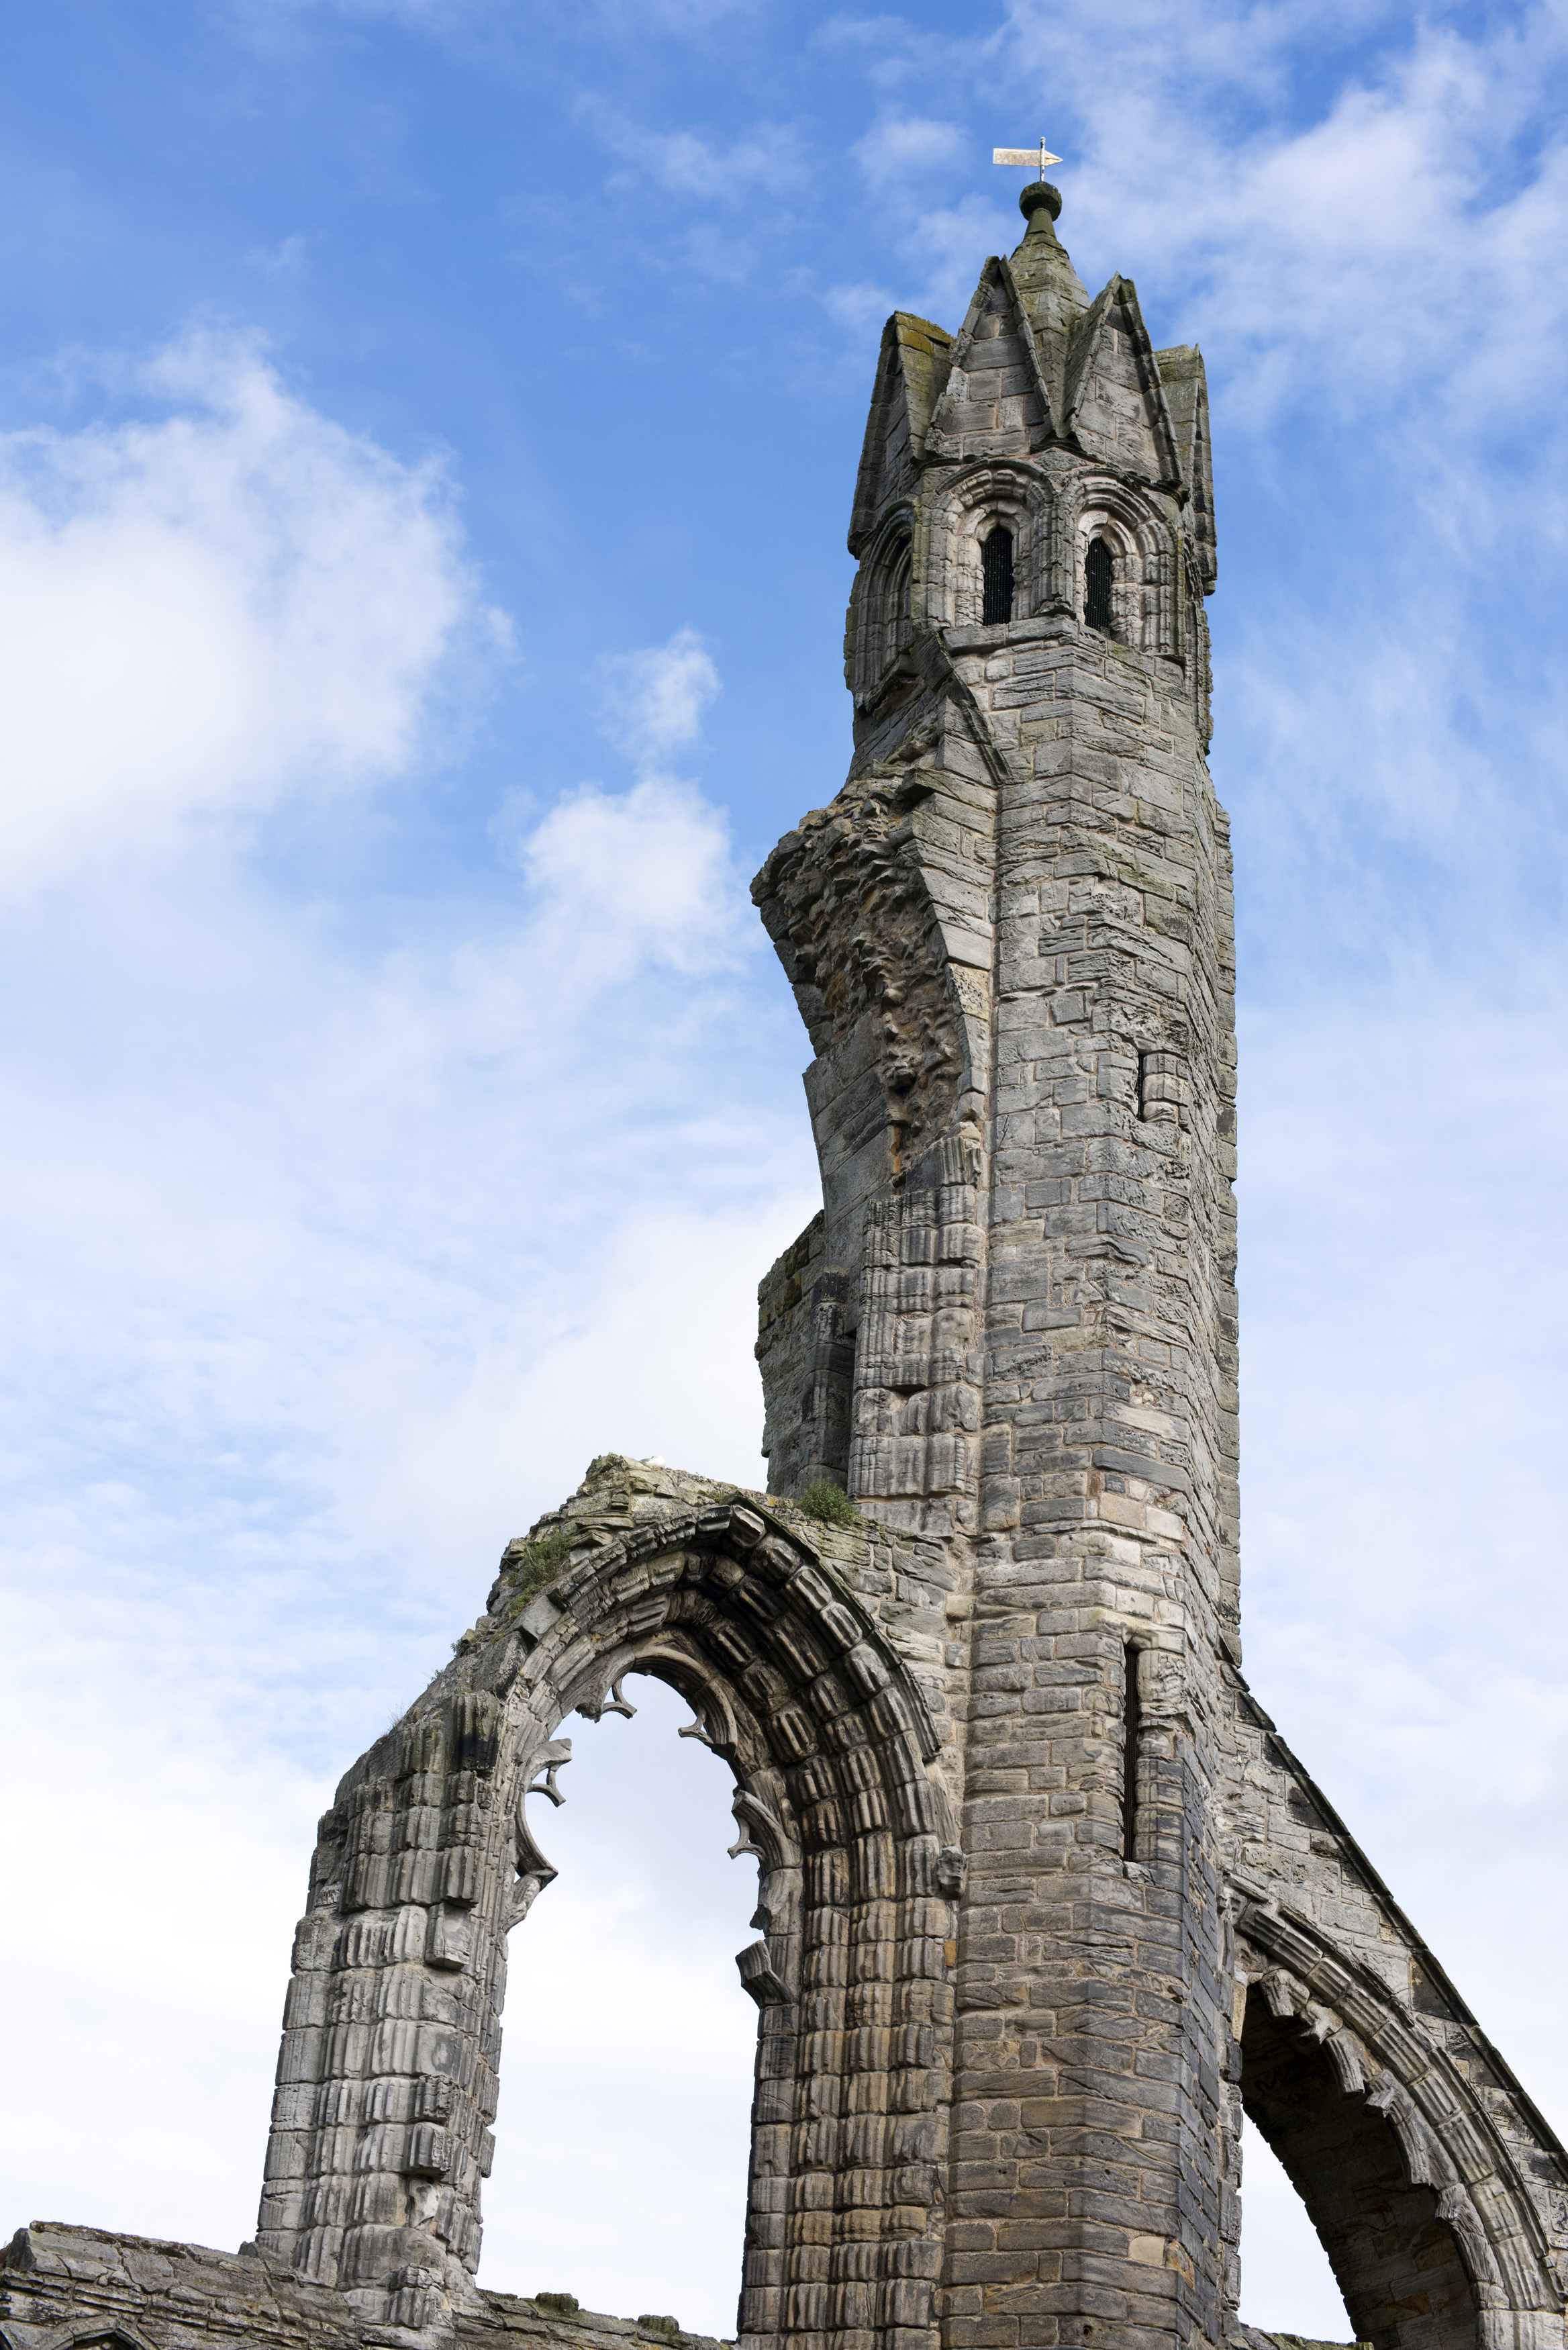 Low angle view on old stone carved tower of Saint Andrews Cathedral under partly sunny sky